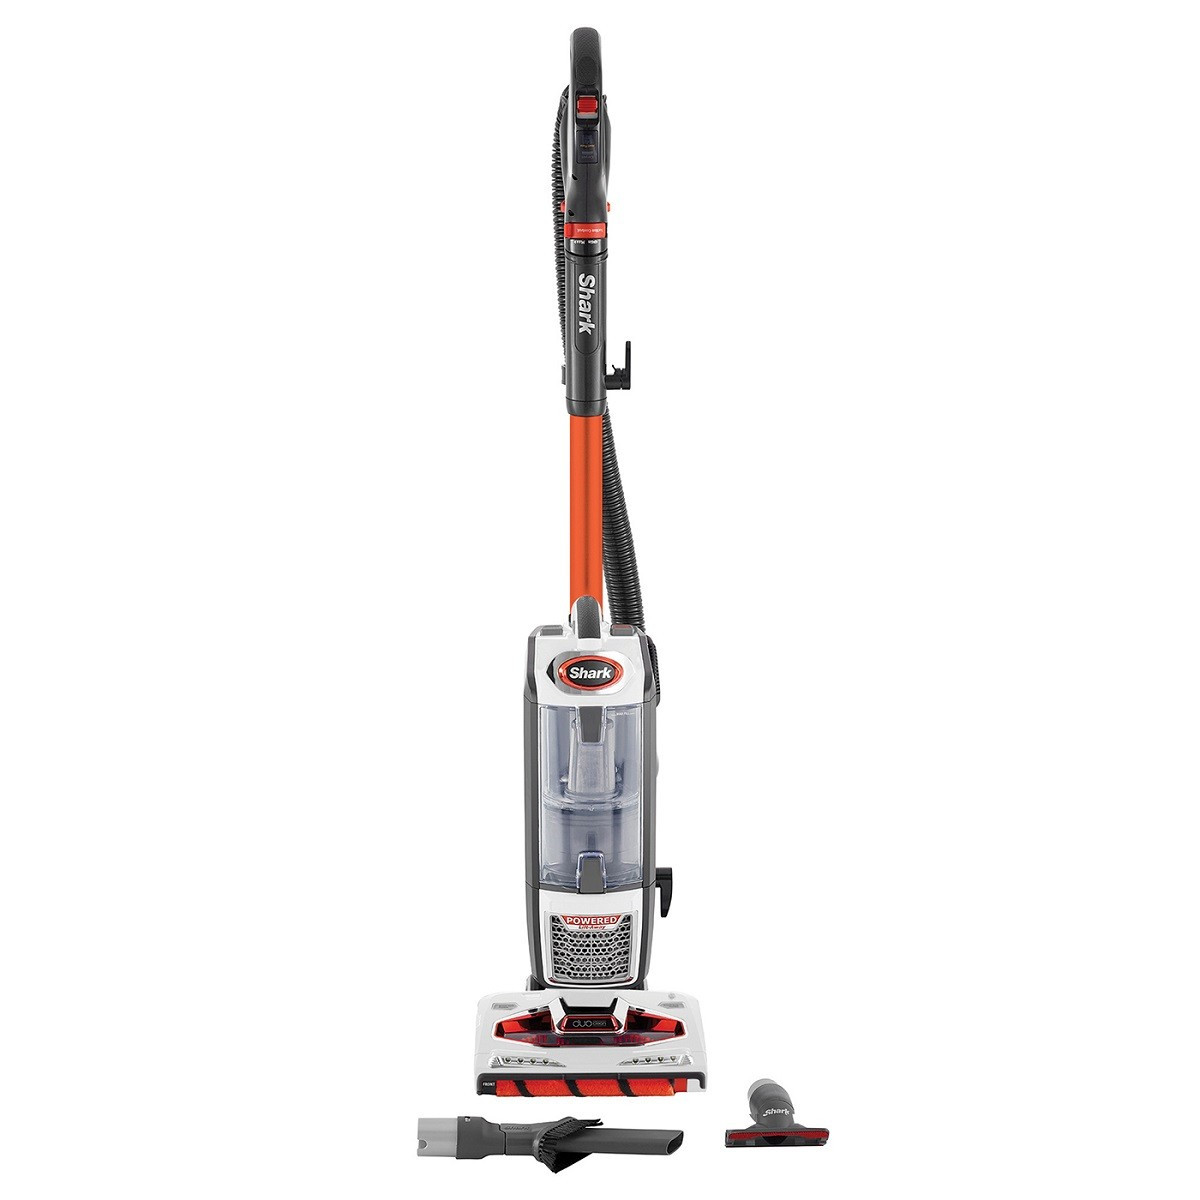 Hardwood Floor Cleaner Rental Of 17 Unique Shark Hardwood Floor Cleaner Photograph Dizpos Com for Shark Hardwood Floor Cleaner Awesome Shark Nv681ukt Powered Lift Away True Pet Upright Vacuum Cleaner Pictures